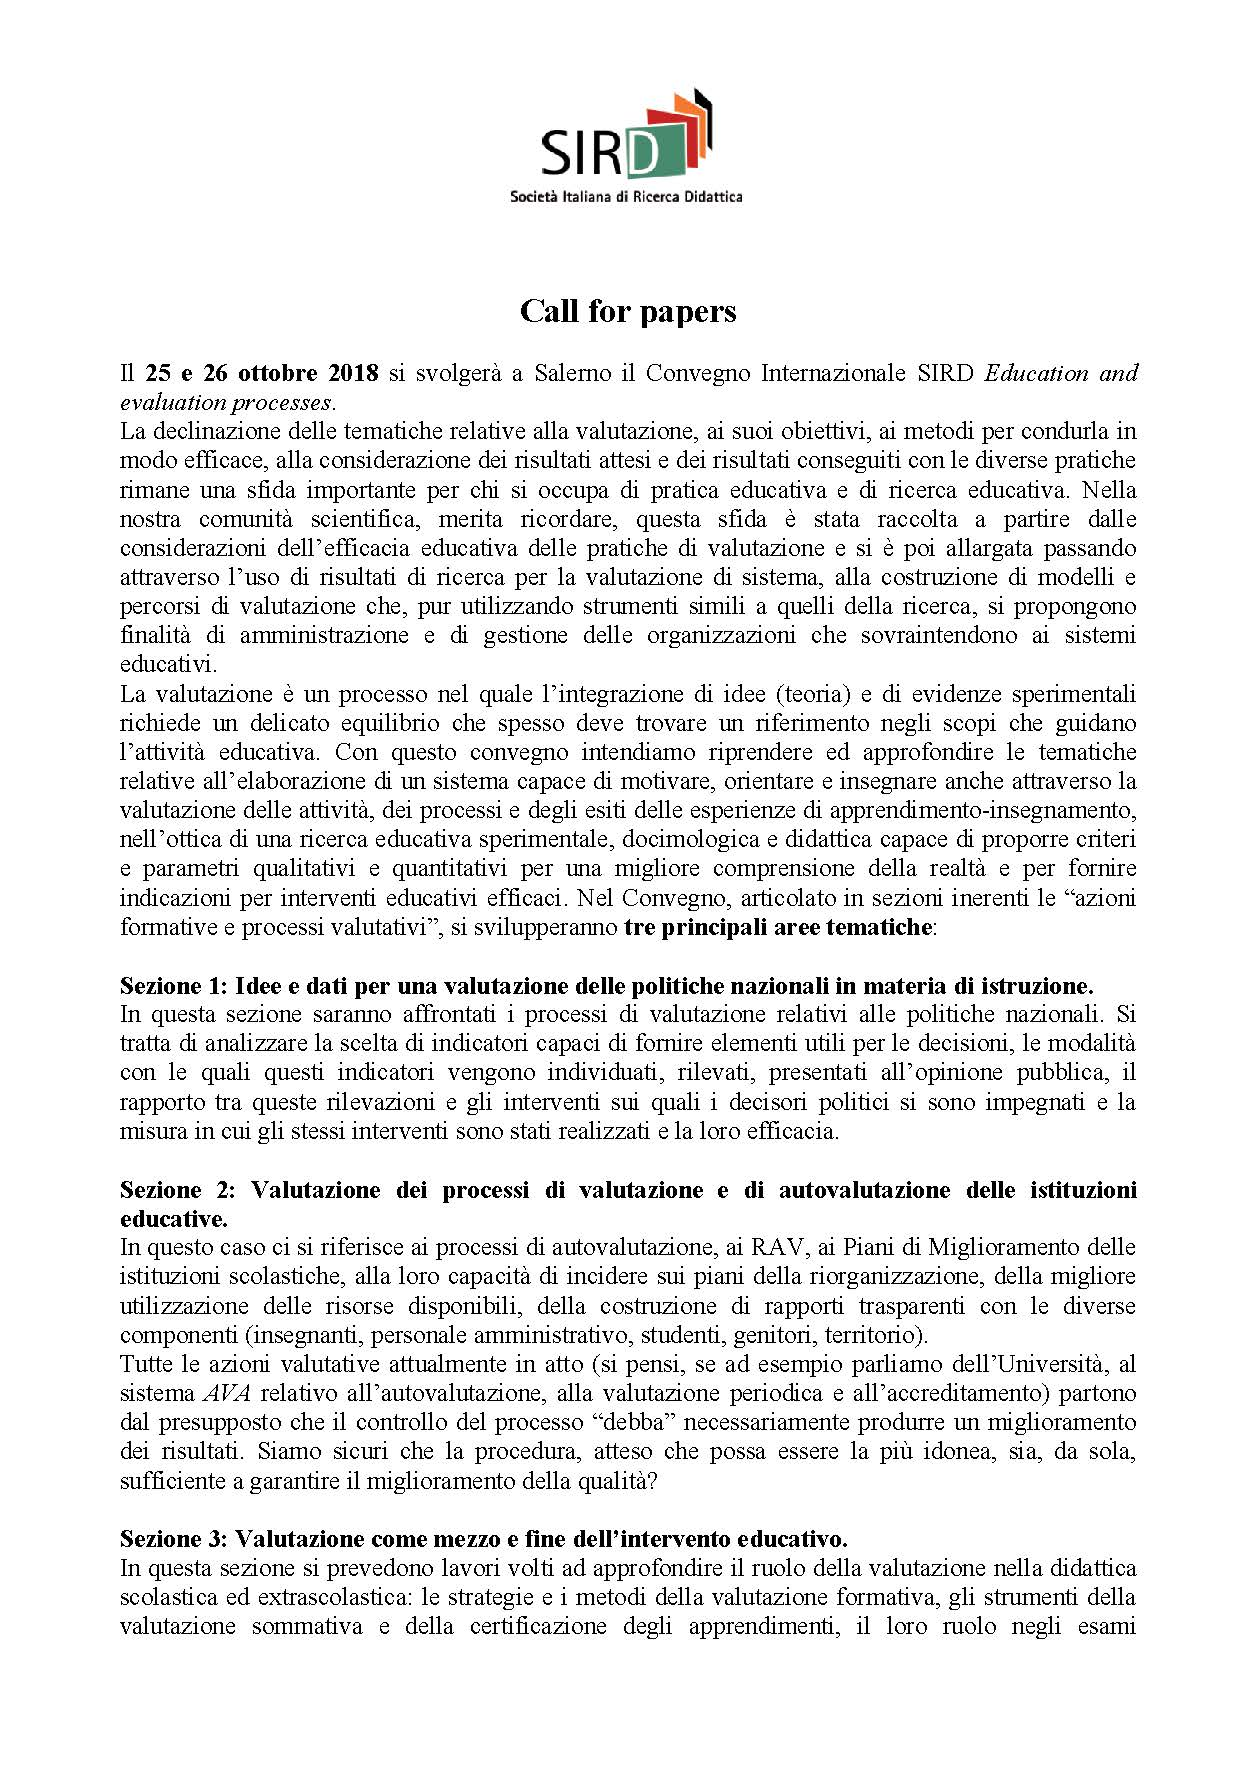 "Call for papers del convegno internazionale SIRD ""Education and evaluation processes"" – 25-26 ottobre, Salerno"